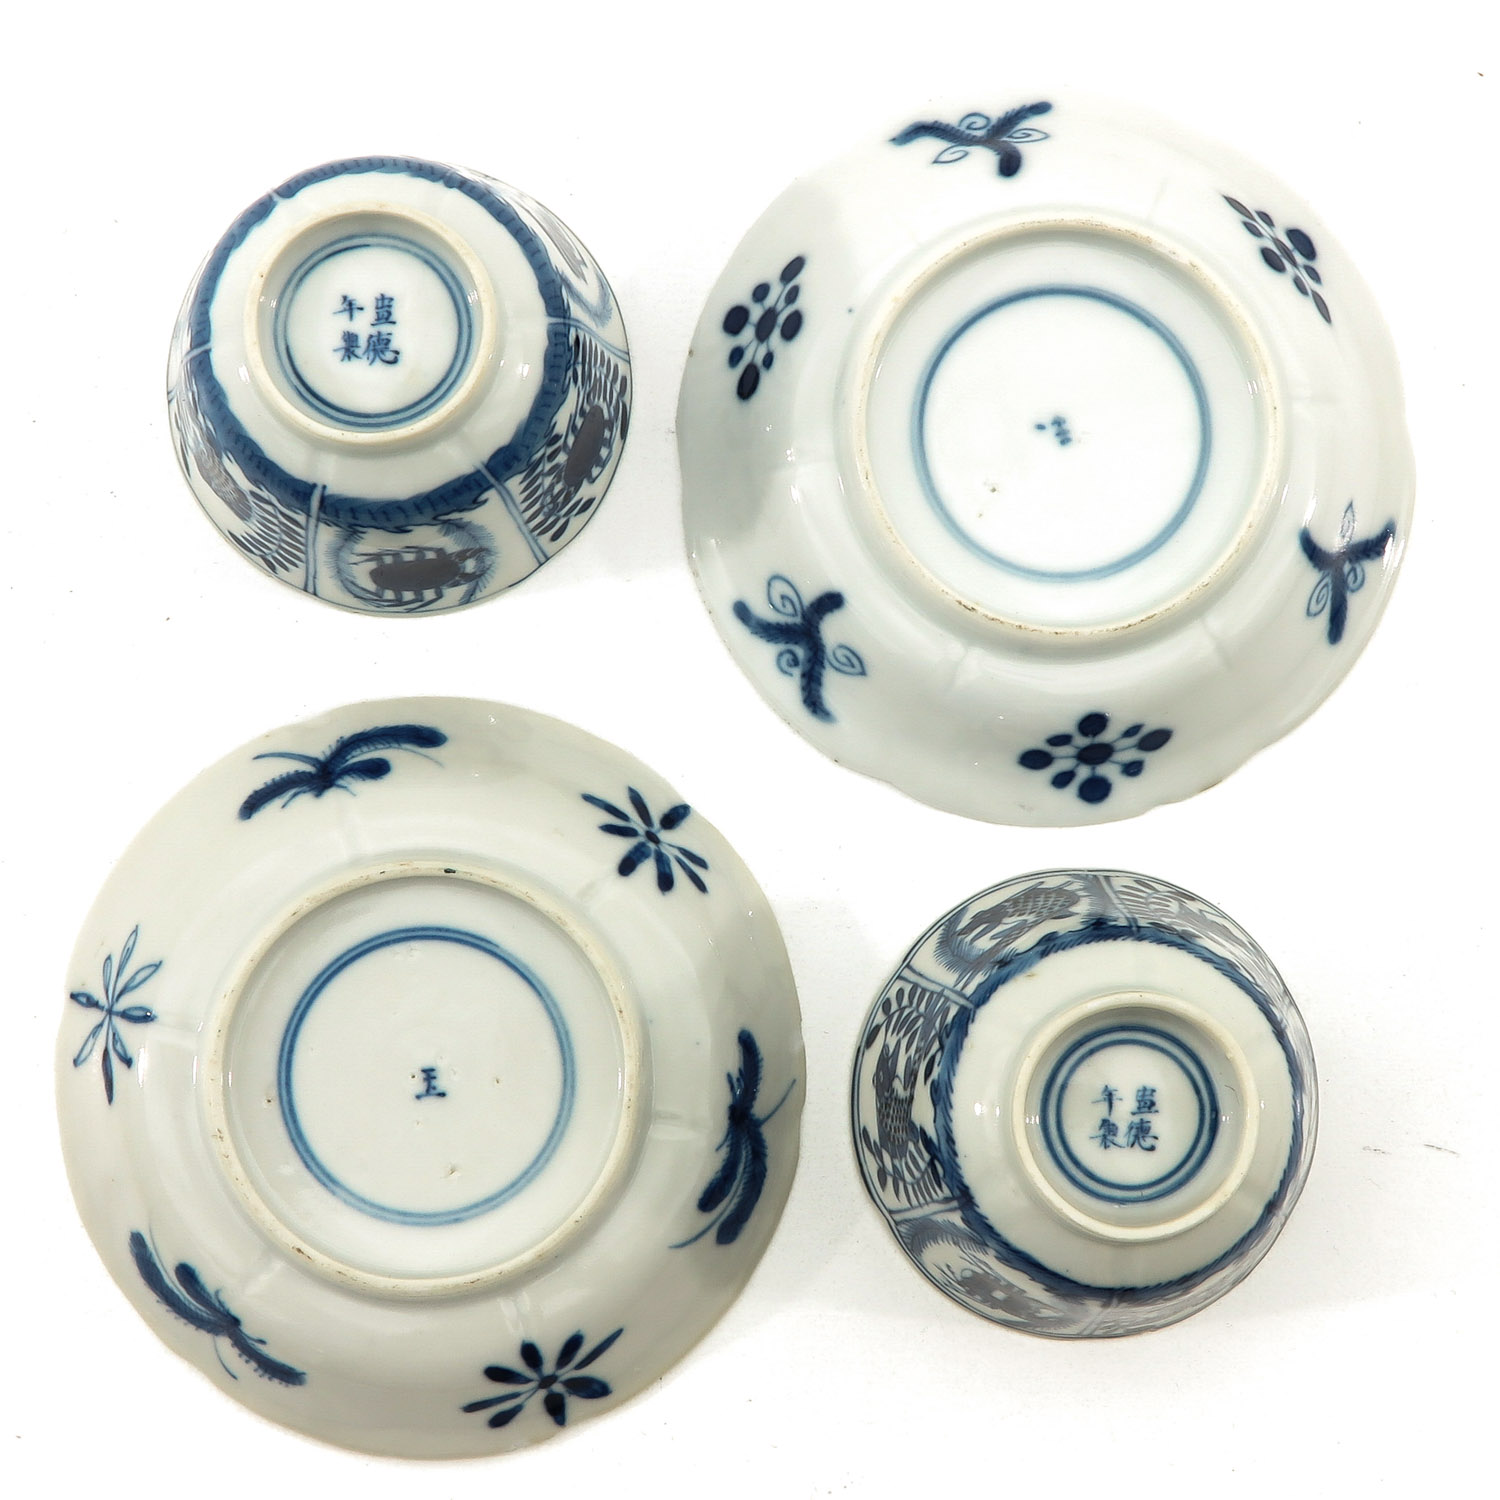 A Pair of Blue and White Cups and Saucers - Image 6 of 9